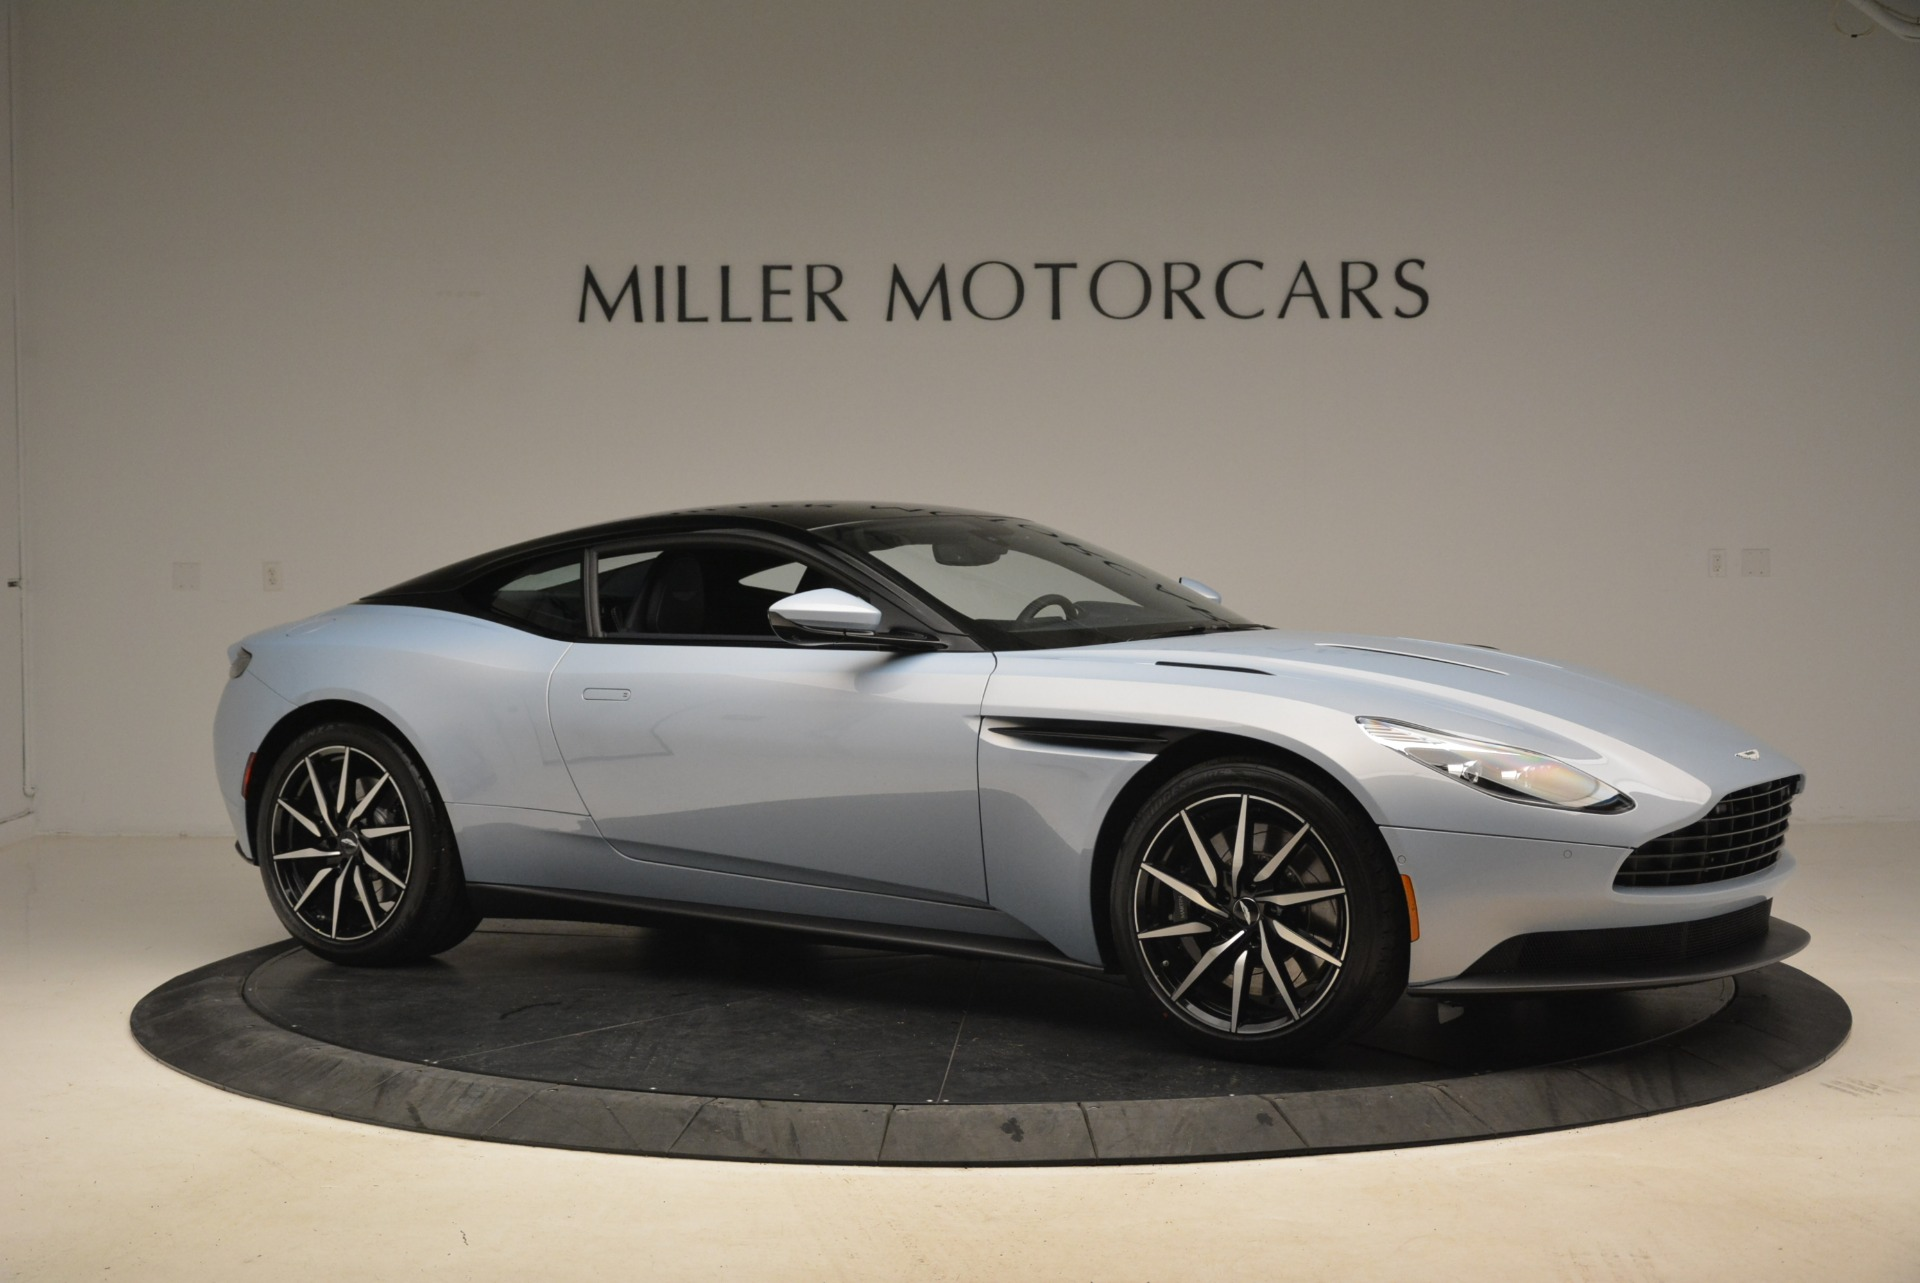 New 2018 Aston Martin DB11 V12 For Sale In Westport, CT 2225_p10